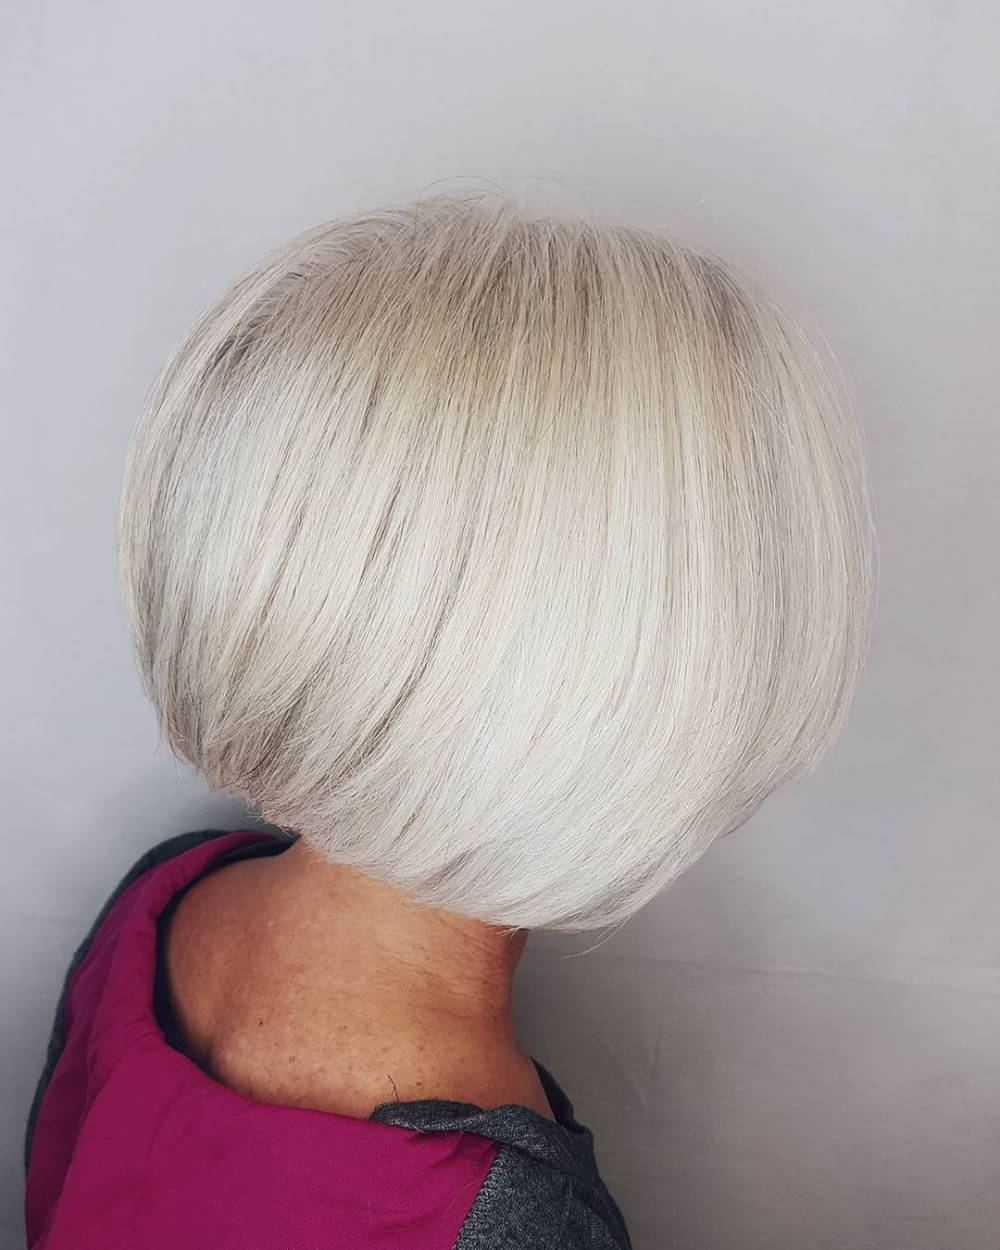 50 Chic Short Bob Hairstyles & Haircuts For Women In 2019 With Regard To Silver Short Bob Haircuts (View 20 of 20)